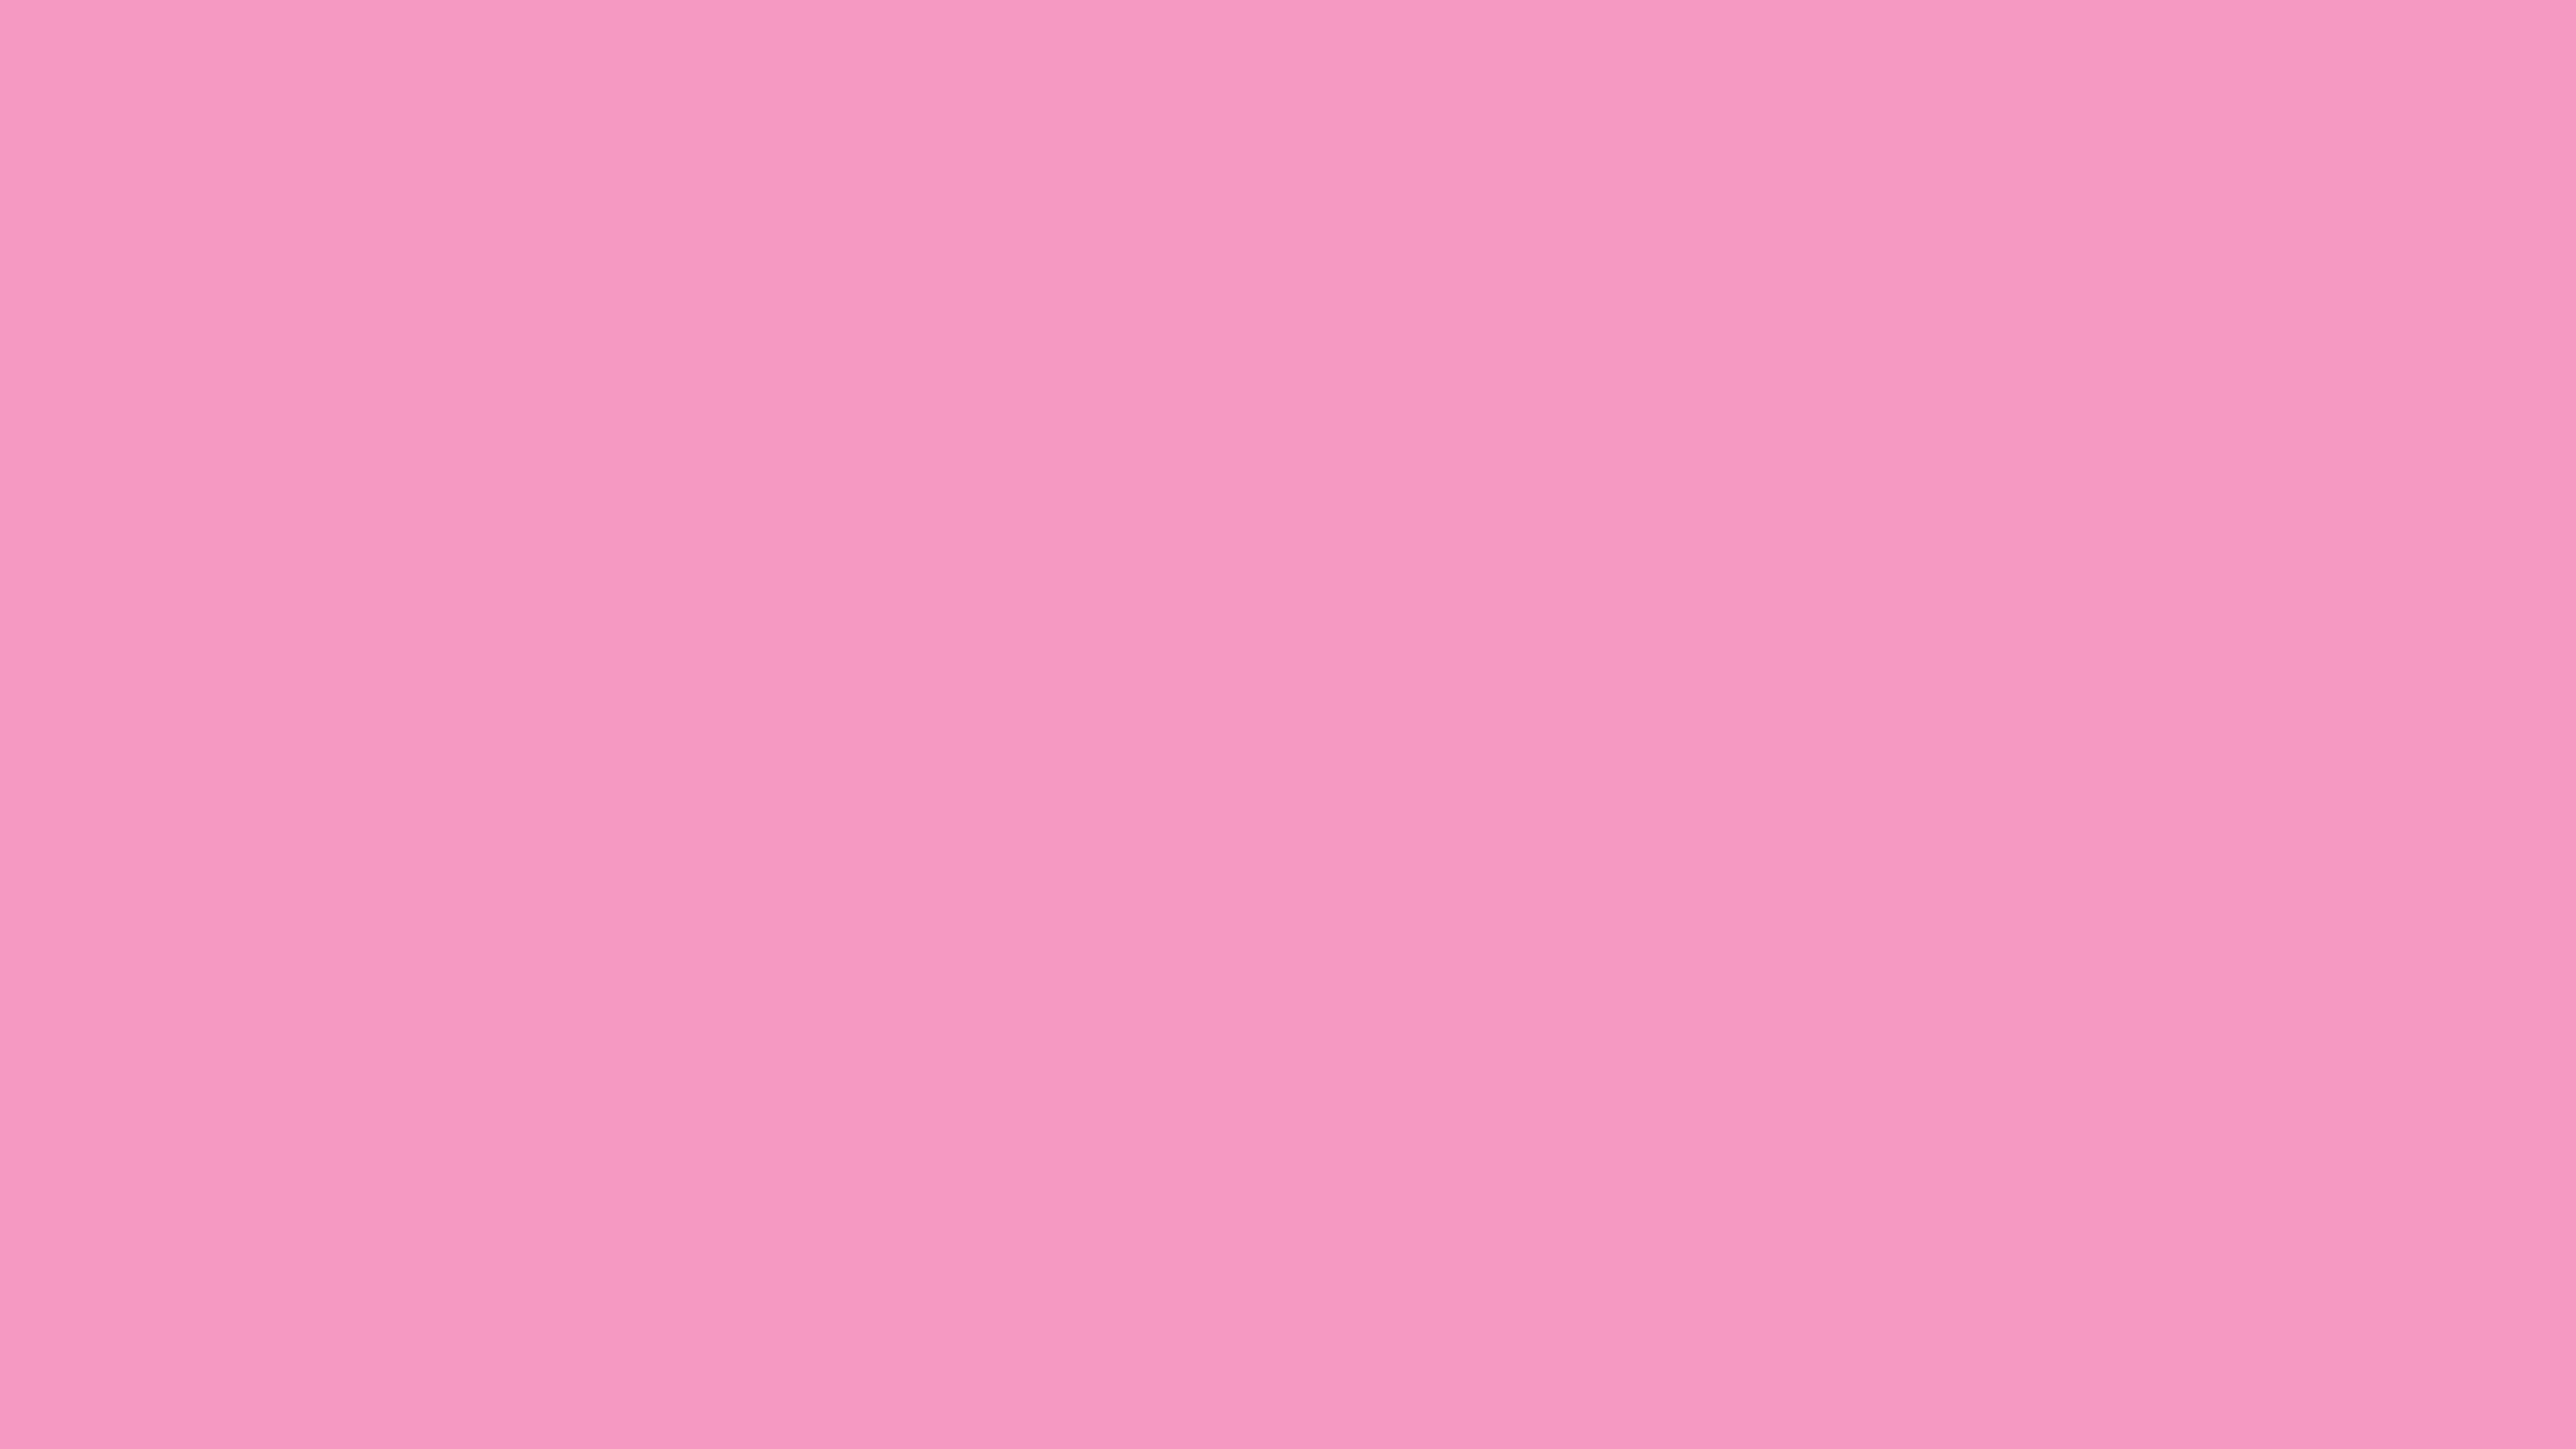 7680x4320 Pastel Magenta Solid Color Background